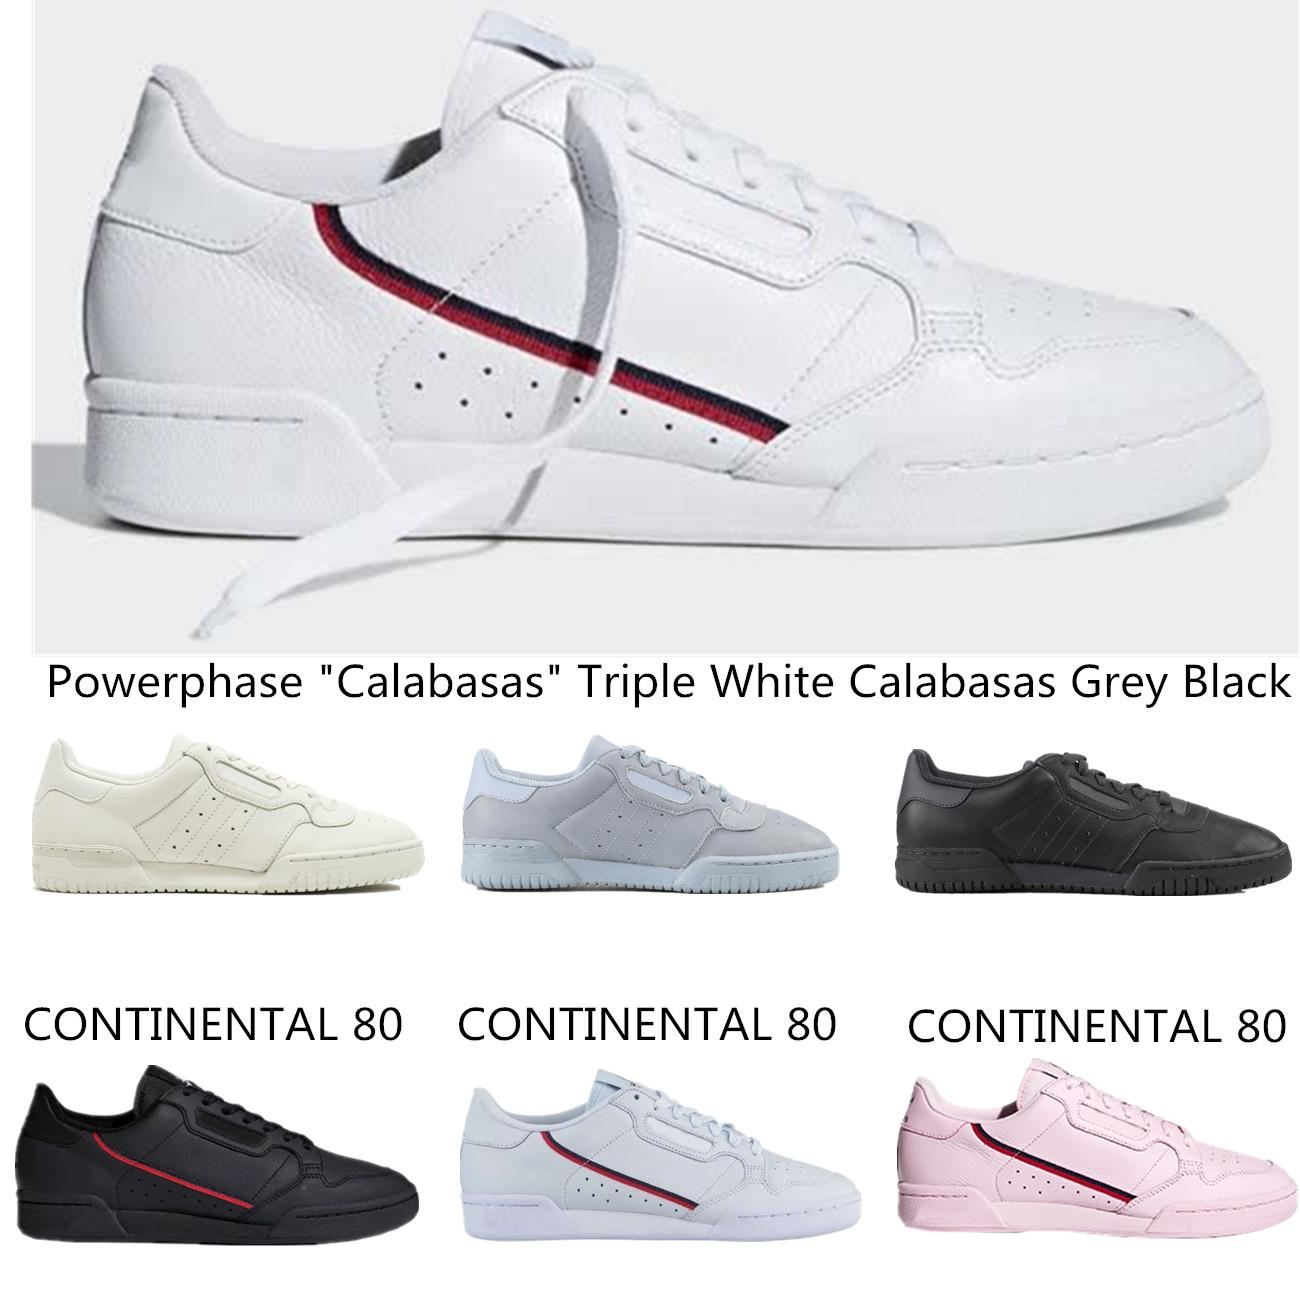 Powerphase 2019 Calabasas Continental 80 Soft Leather Kanye West Casual Shoes Grey Og Core Black Triple White Men Fashion Shoes 36-45